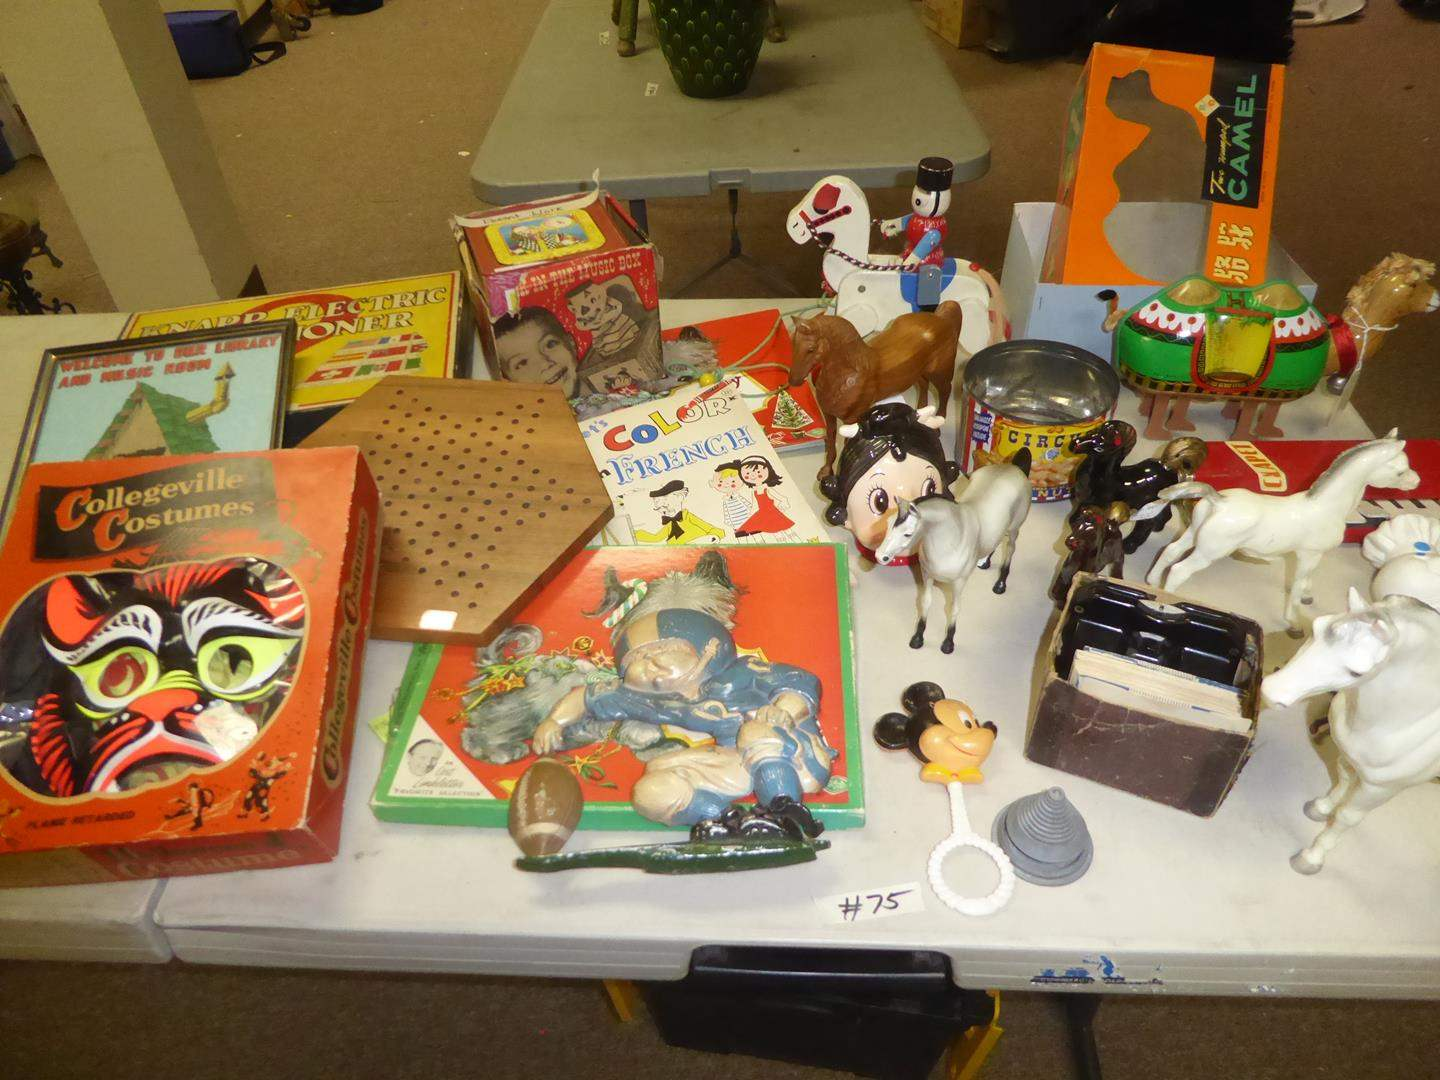 Lot # 75 - Vintage Childs Costume, Games, Jack in the Box, Breyer, Hartland & Other Horses, View Master, Tin Camel & More (main image)